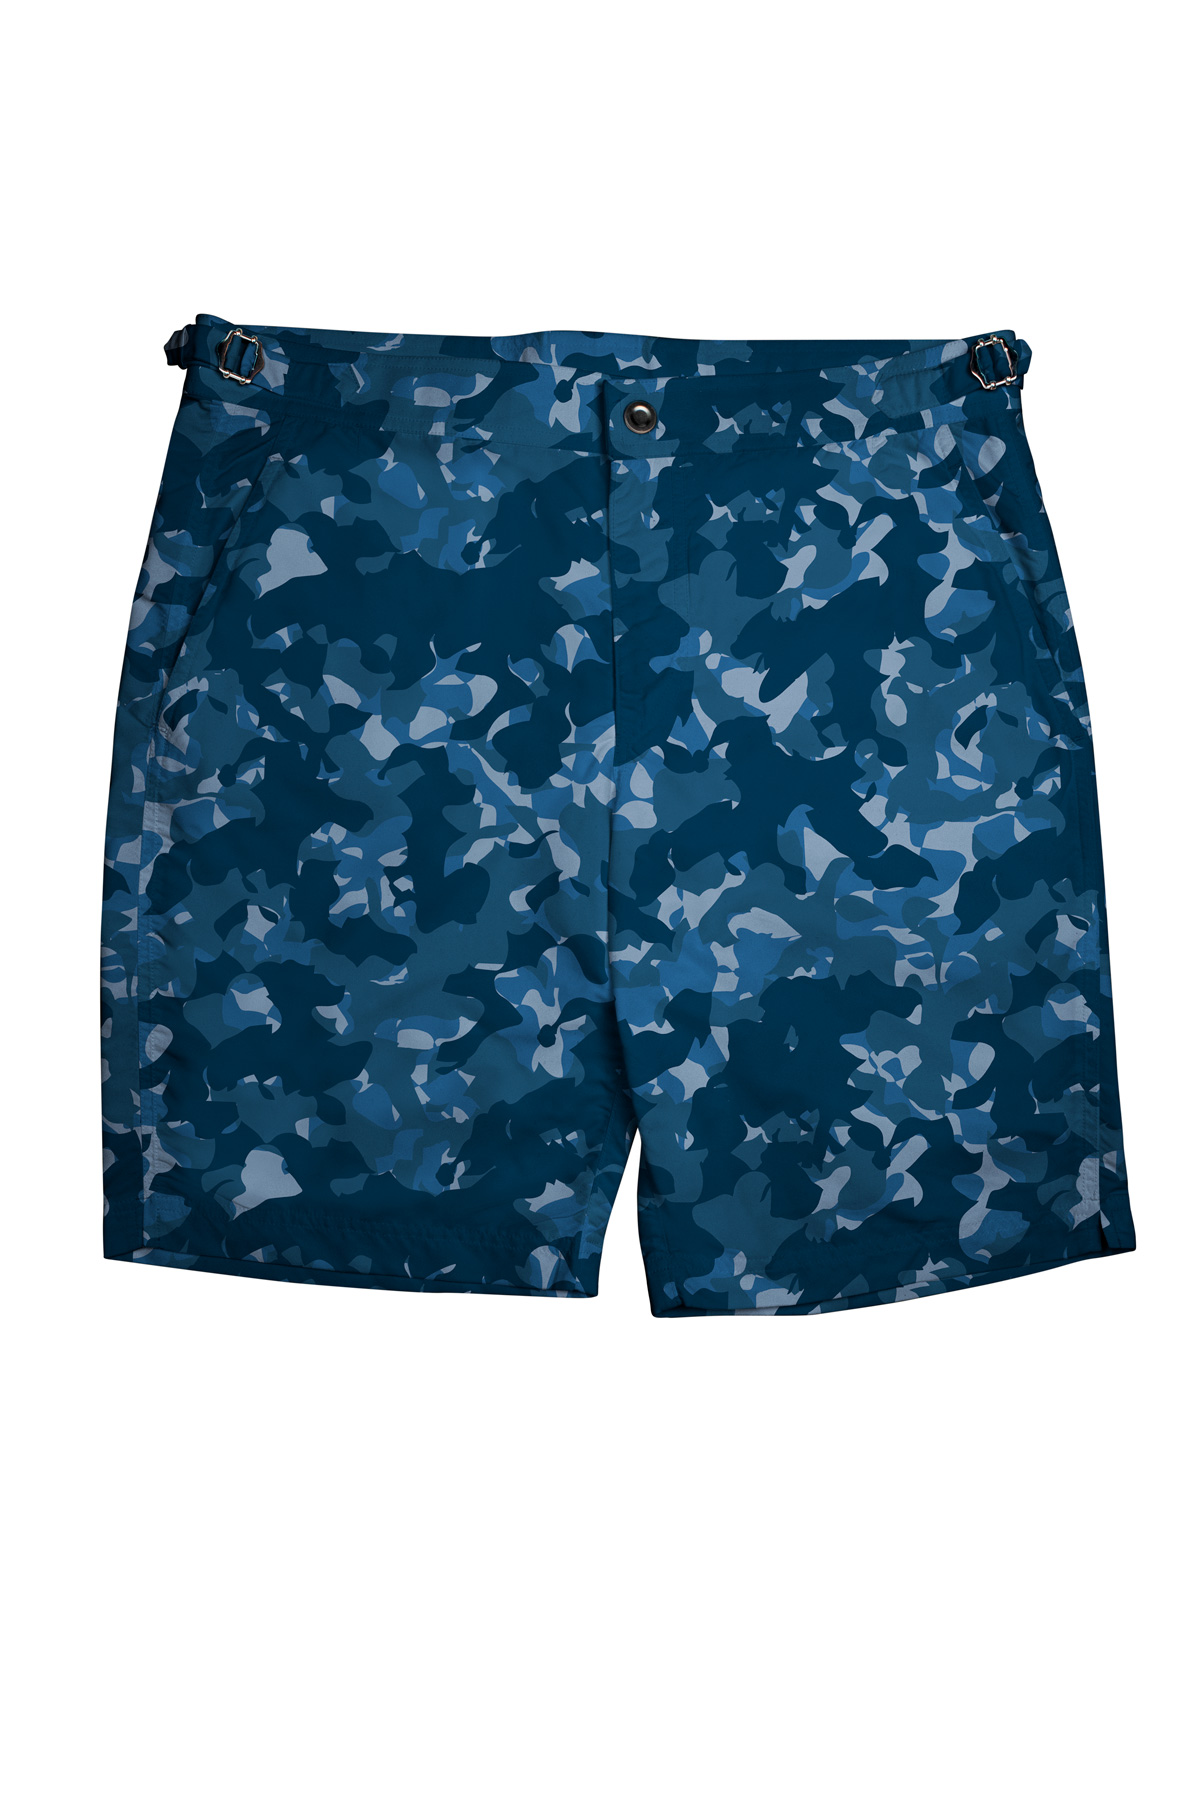 Blue Camouflage Swim Shorts